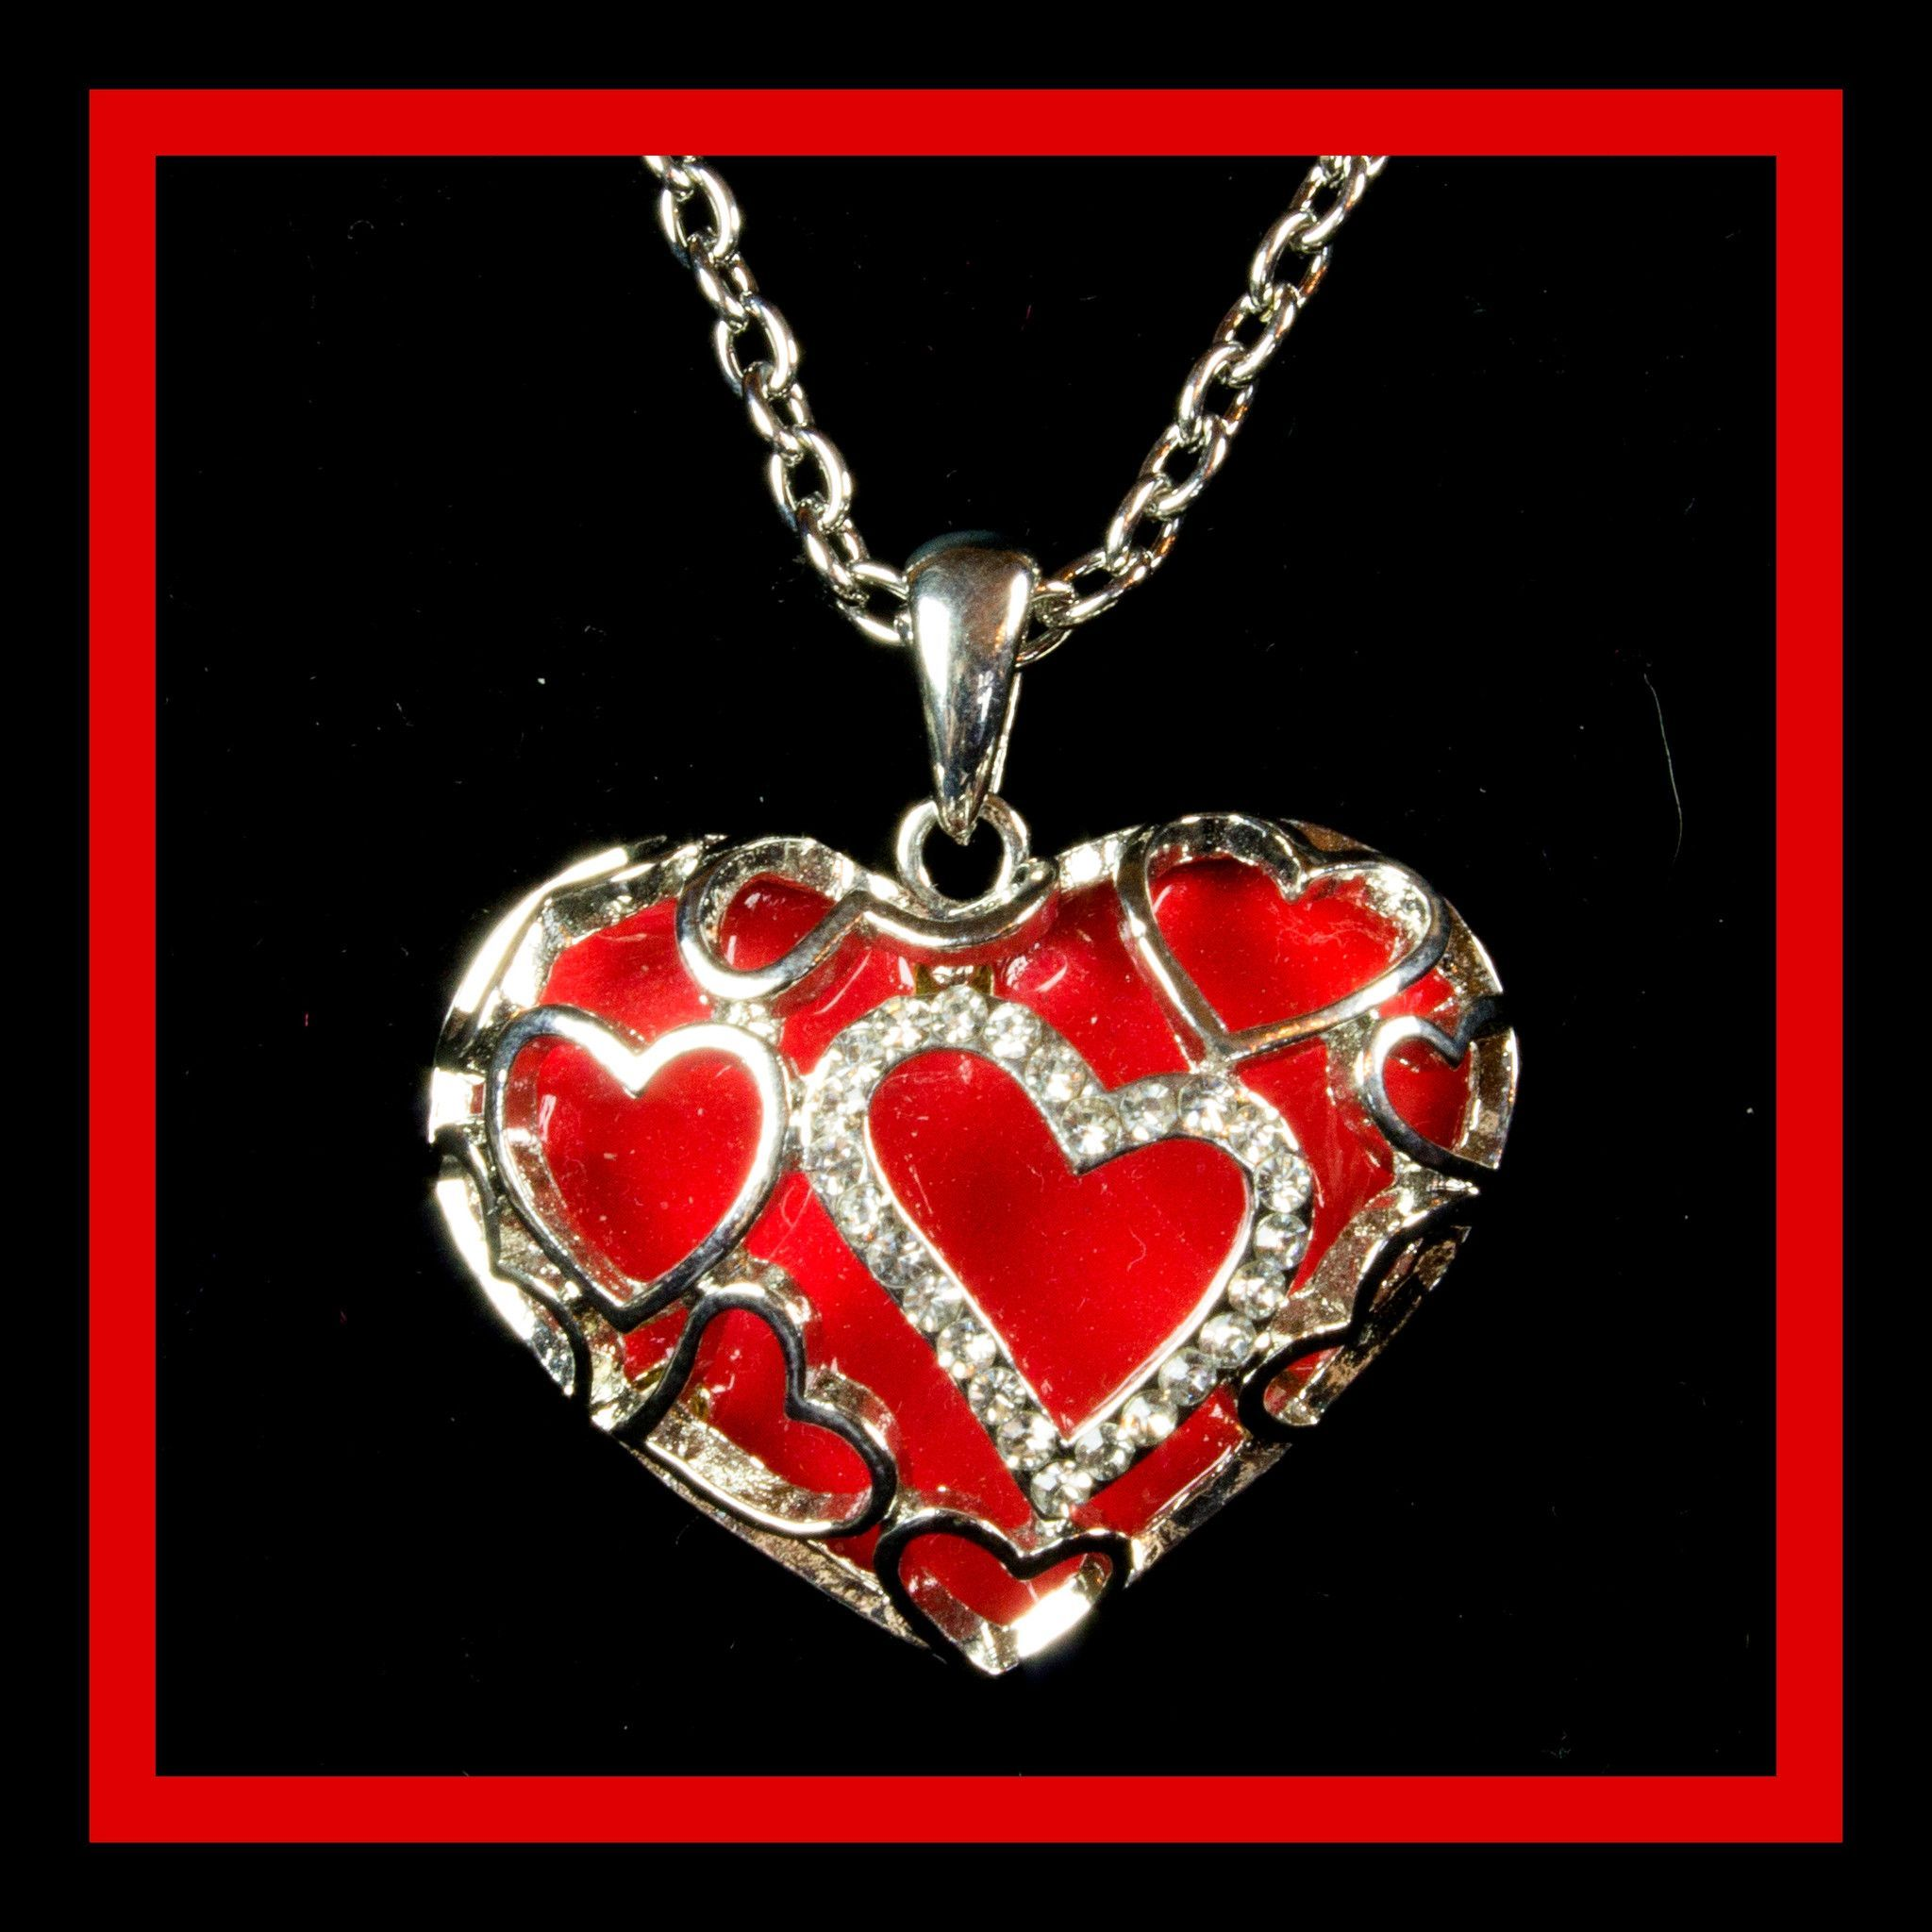 hearts kingdom heartless red kh heart necklace sale pendant product